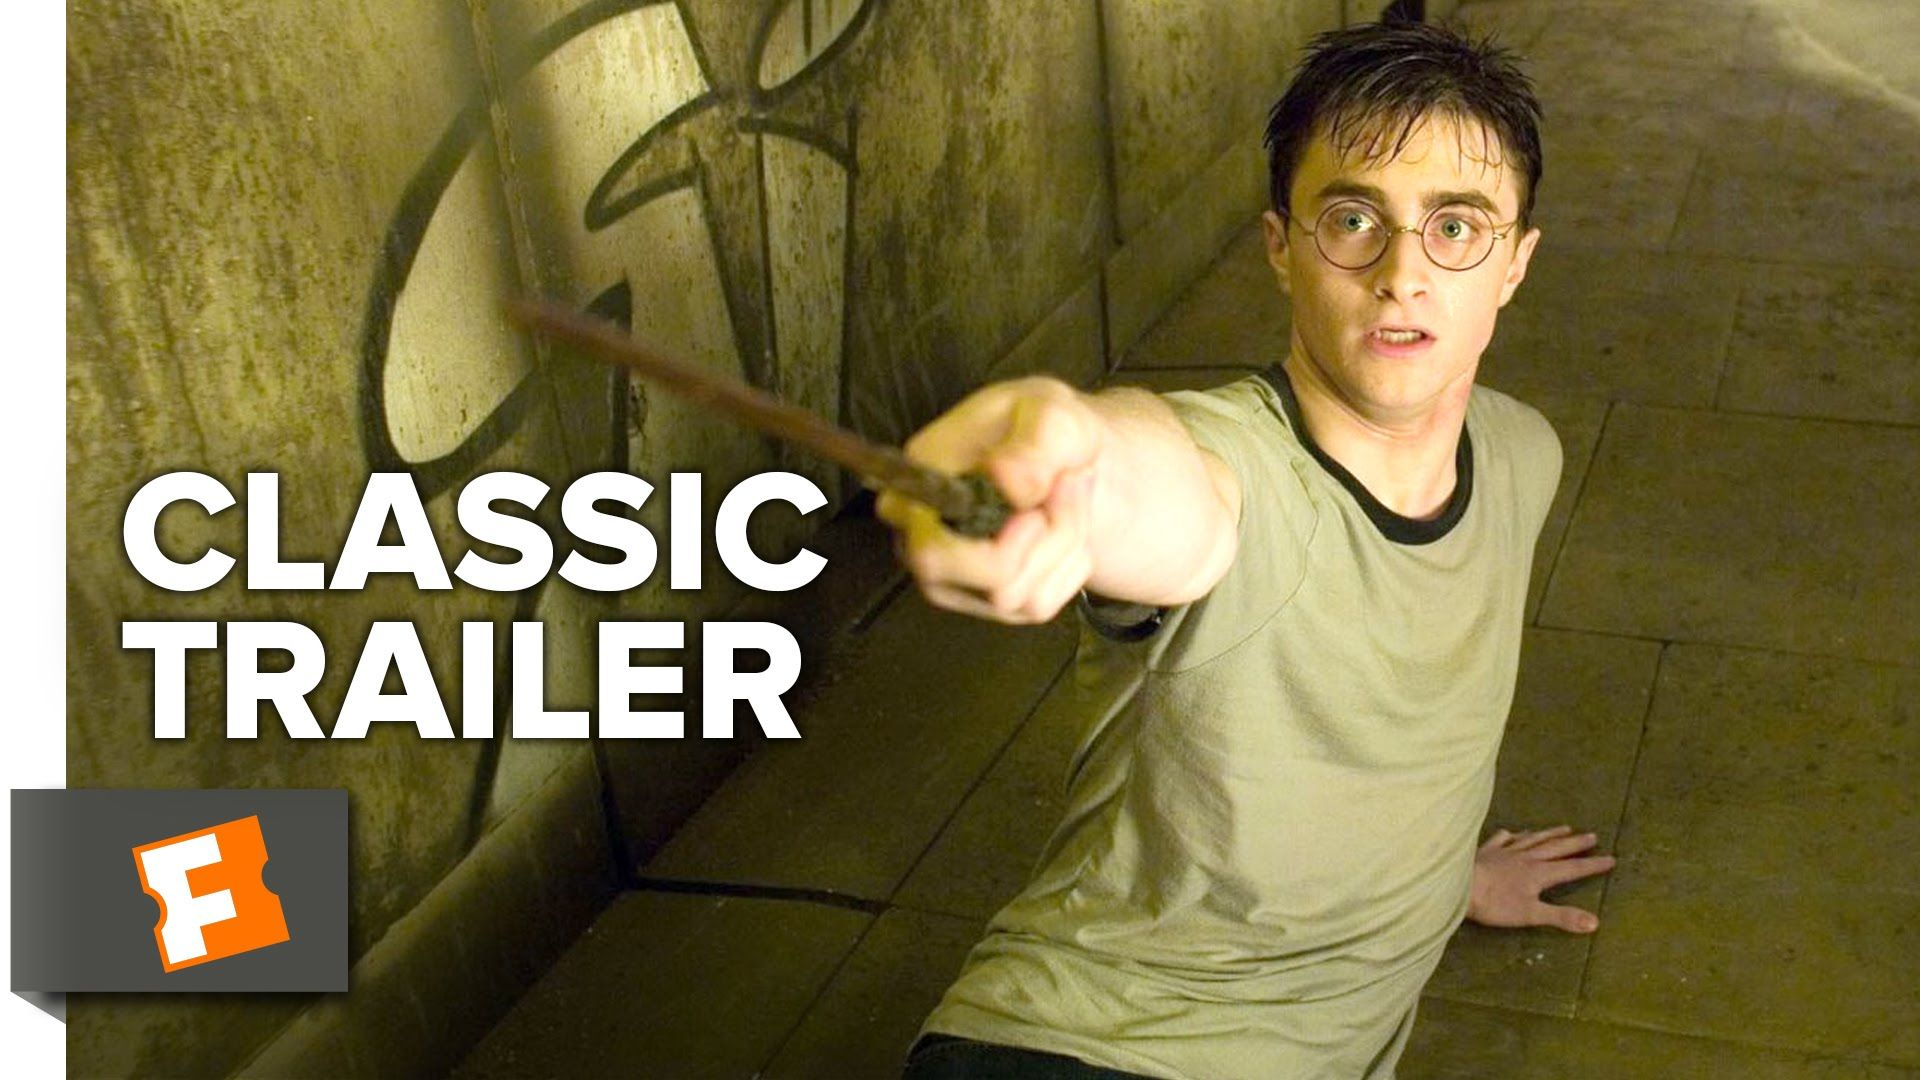 Harry Potter And The Order Of The Phoenix 2007 Official Trailer Daniel Radcliffe Movie Hd Y Daniel Radcliffe Movies Harry Potter Trailer Daniel Radcliffe